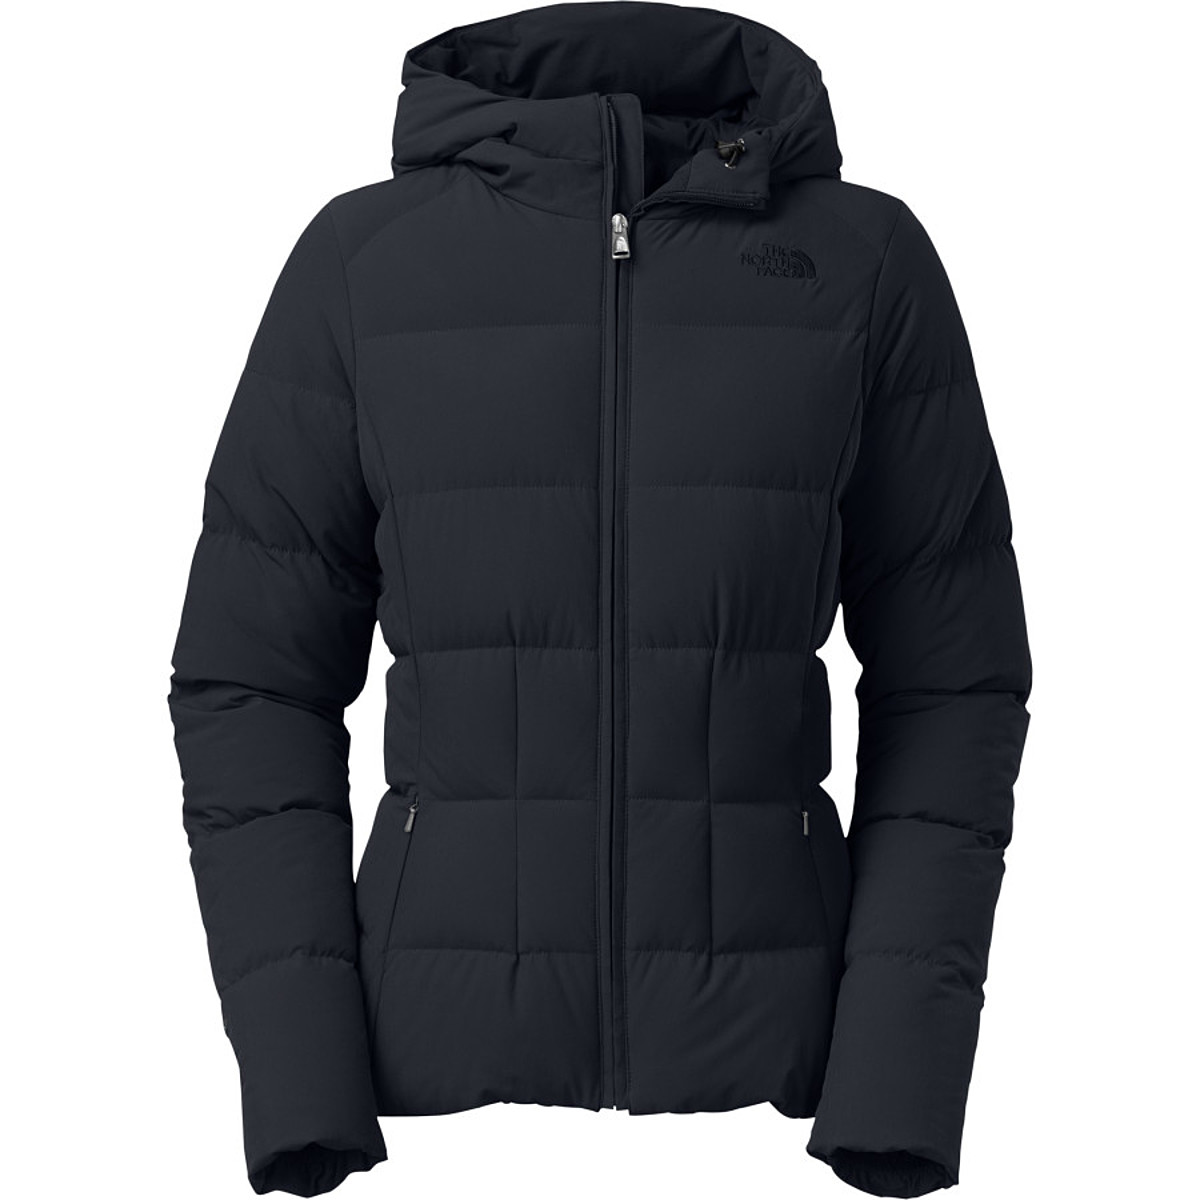 The North Face Luciena Stretch Jacket